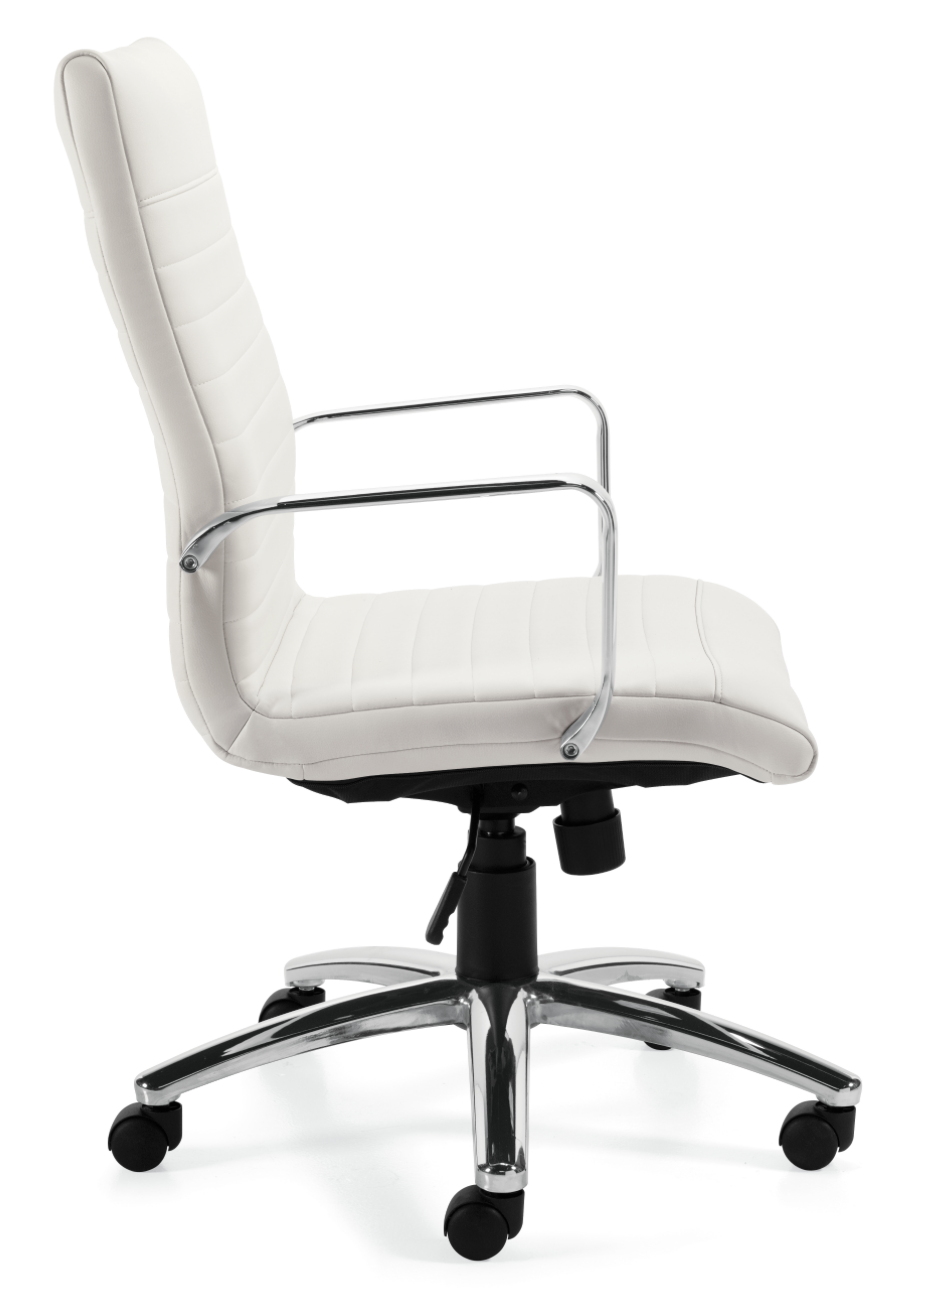 Offices To Go 11730-BL28 Luxhide Chair